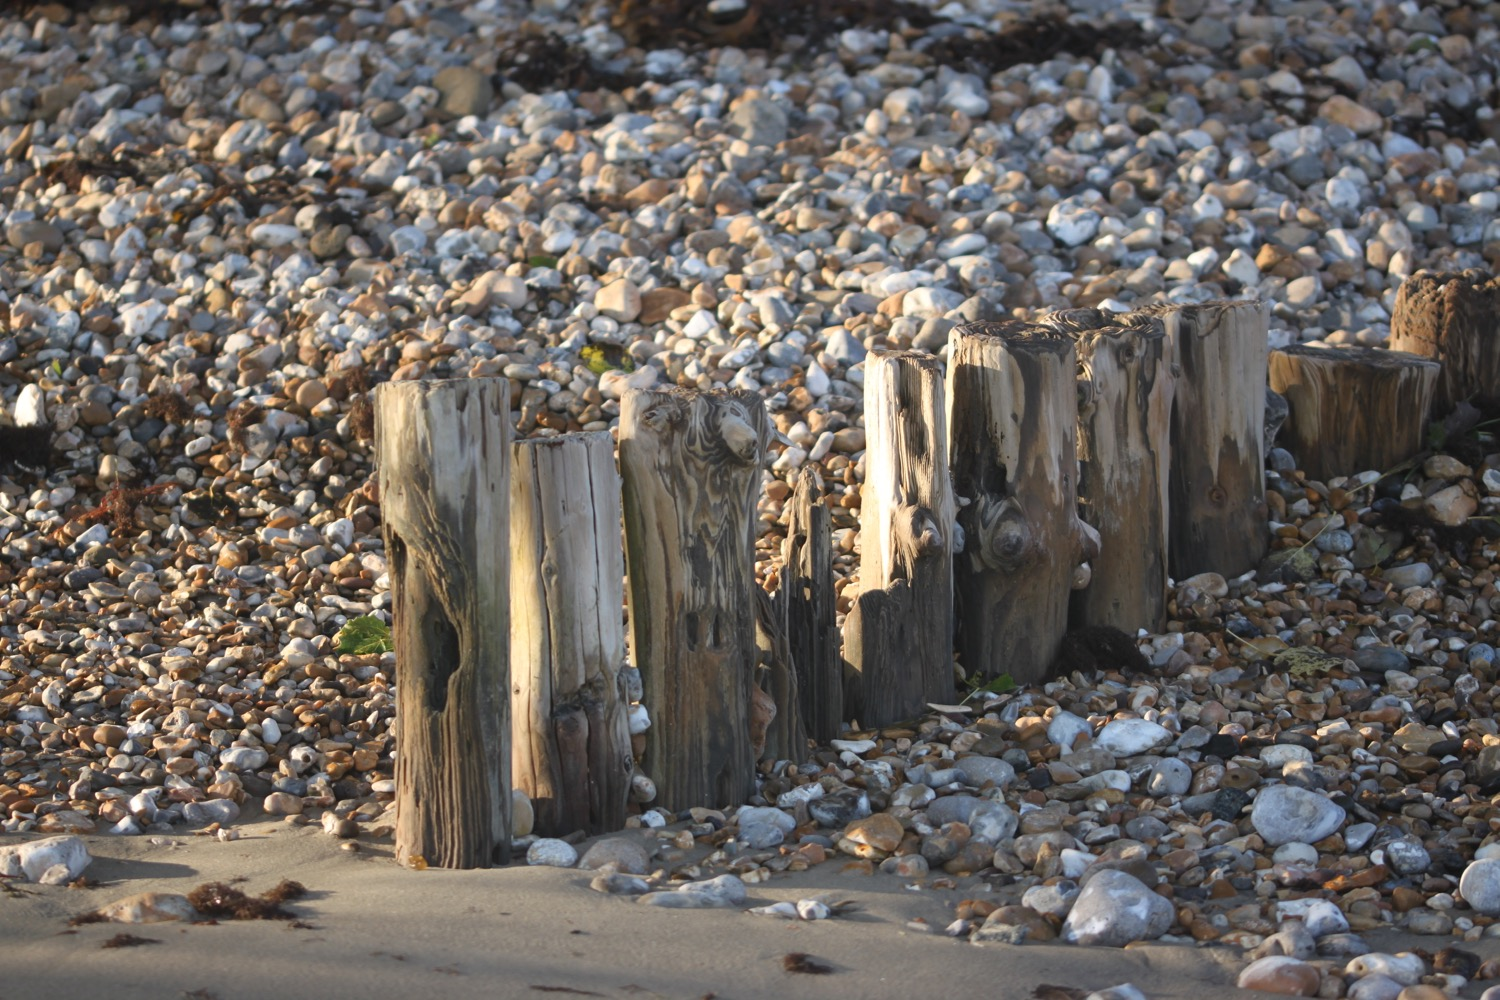 bembridge point beach.jpg 5.jpg